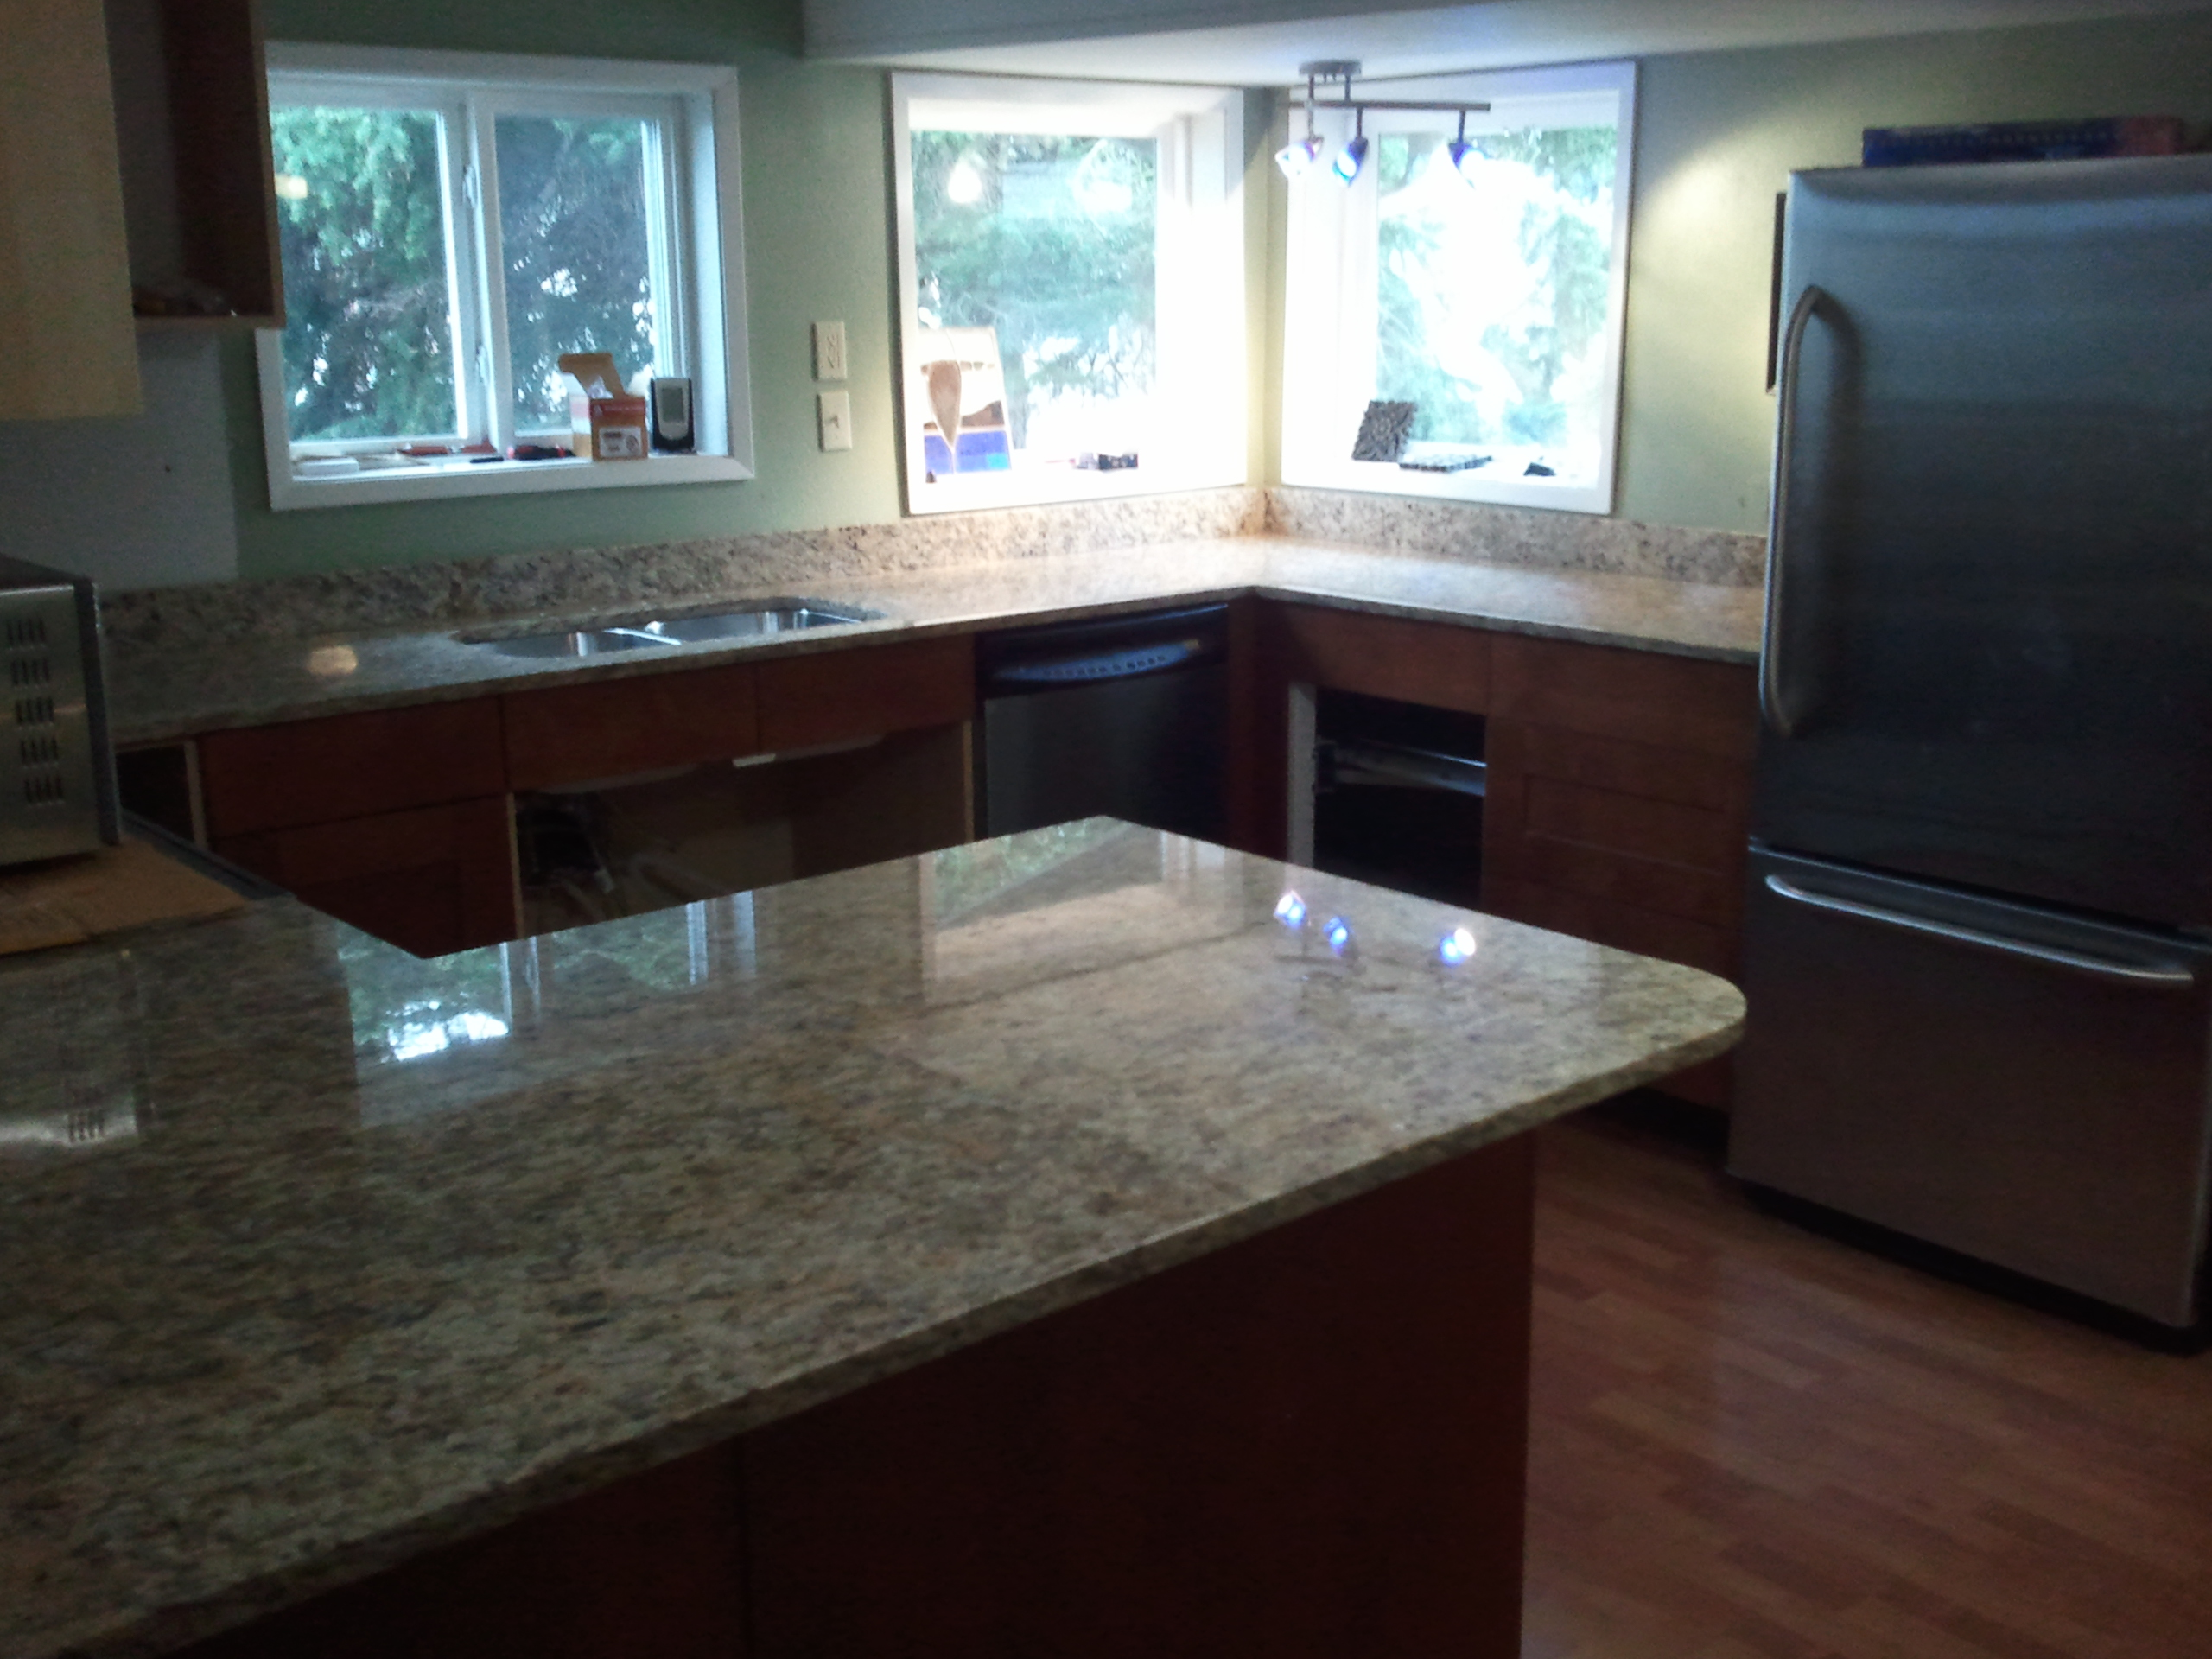 installed the estimator kitchen in project installing granite cost of diy countertops